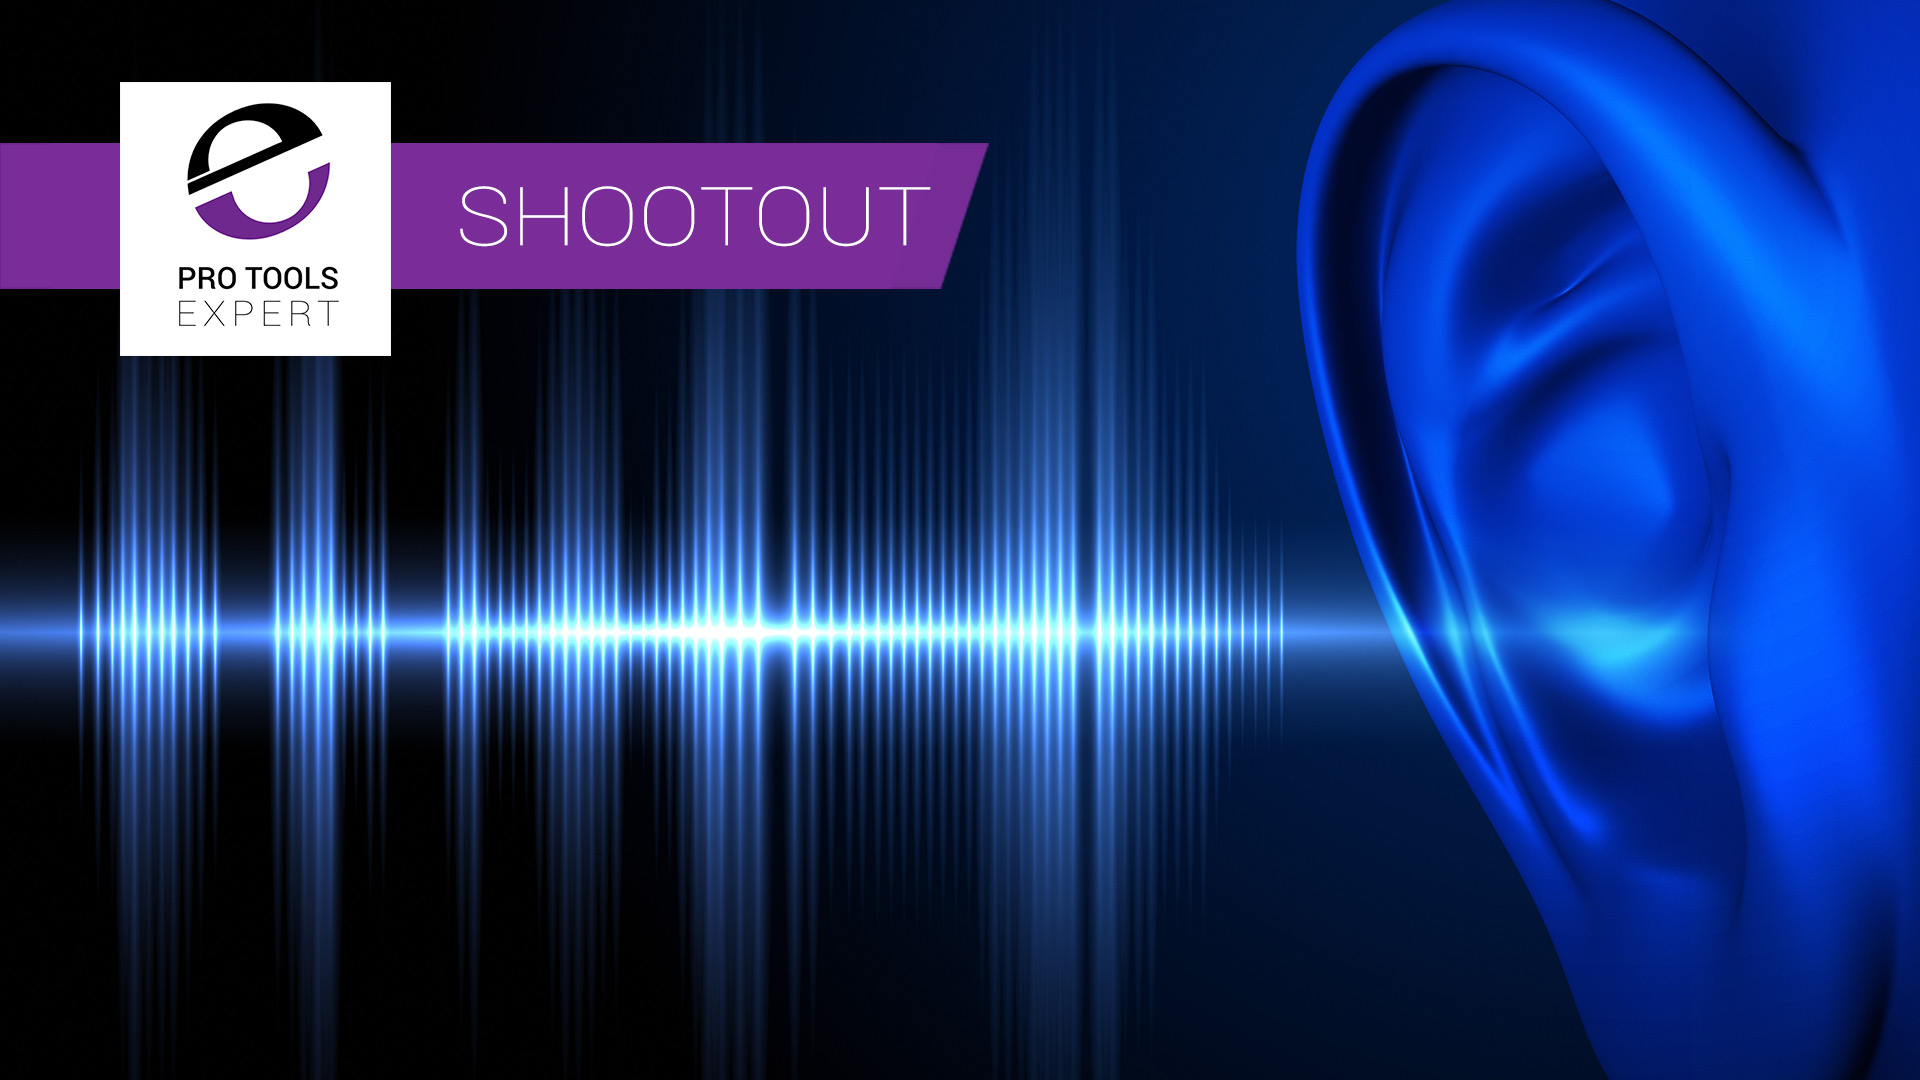 audio-mastering-shootout-professional-services-online-pro-tools-expert.jpg